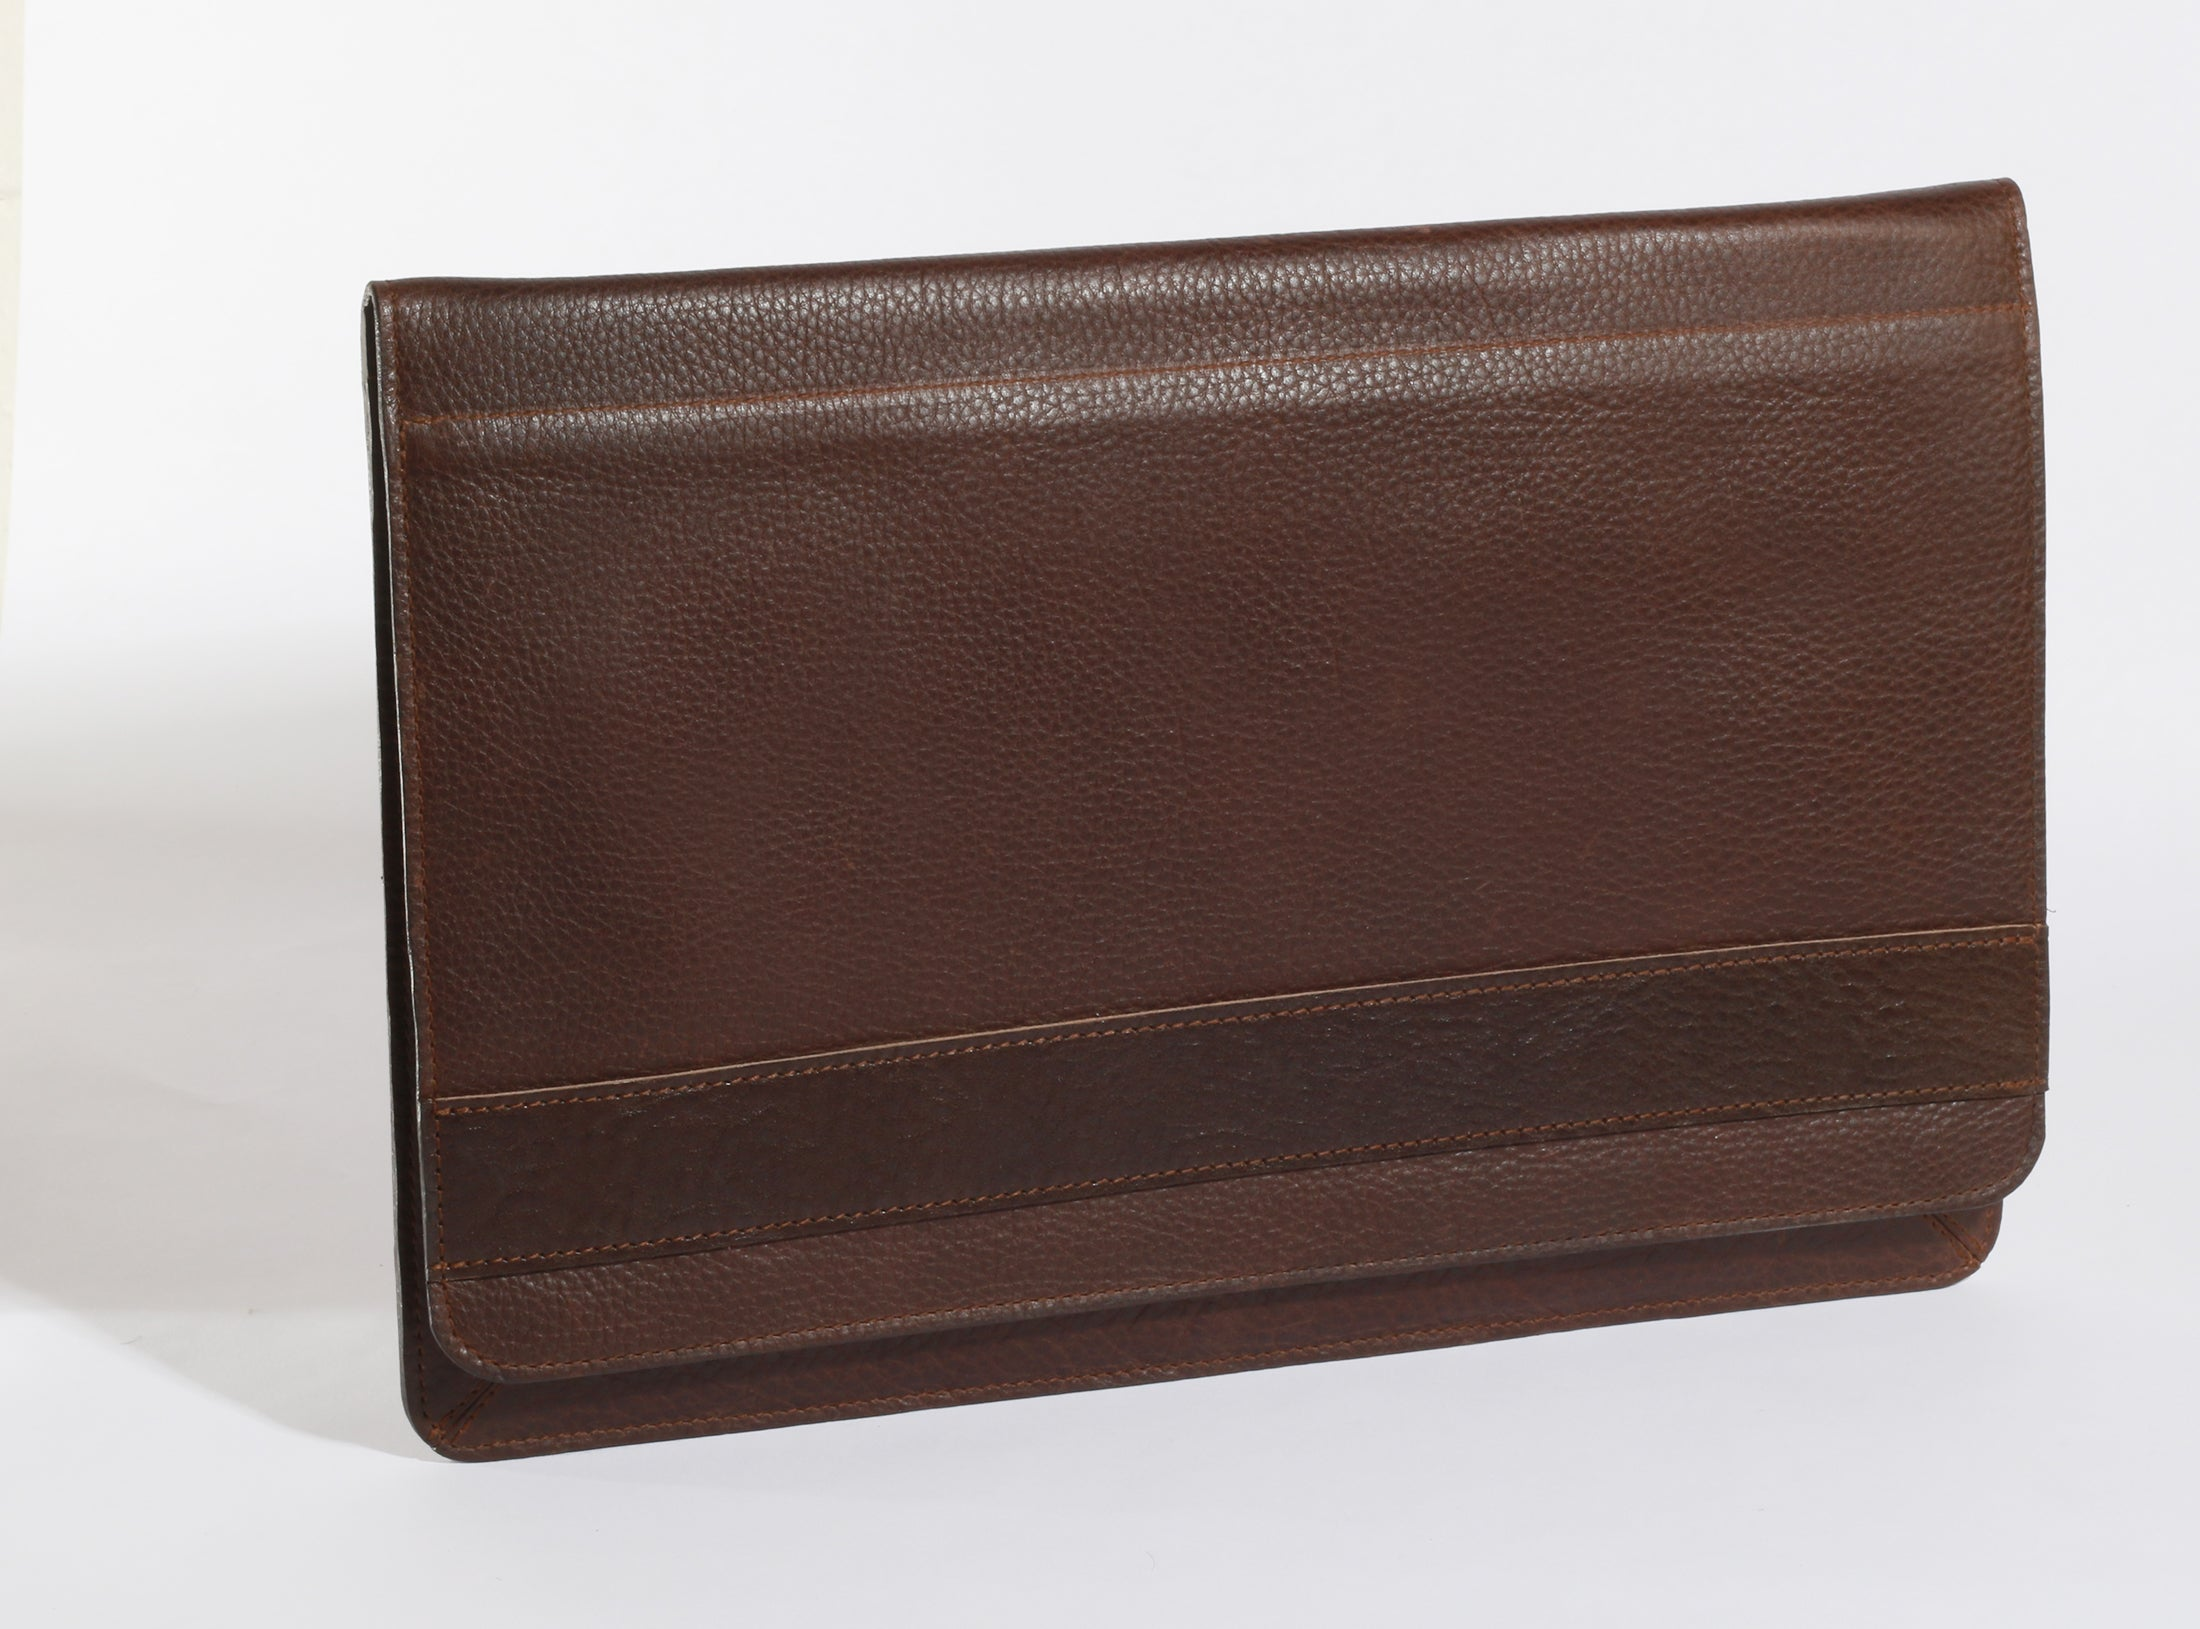 Leather Laptop Case. Made in USA. Select Quantities. By American leather makers. Choose ethically made leather bags and leather accessories that make a difference.